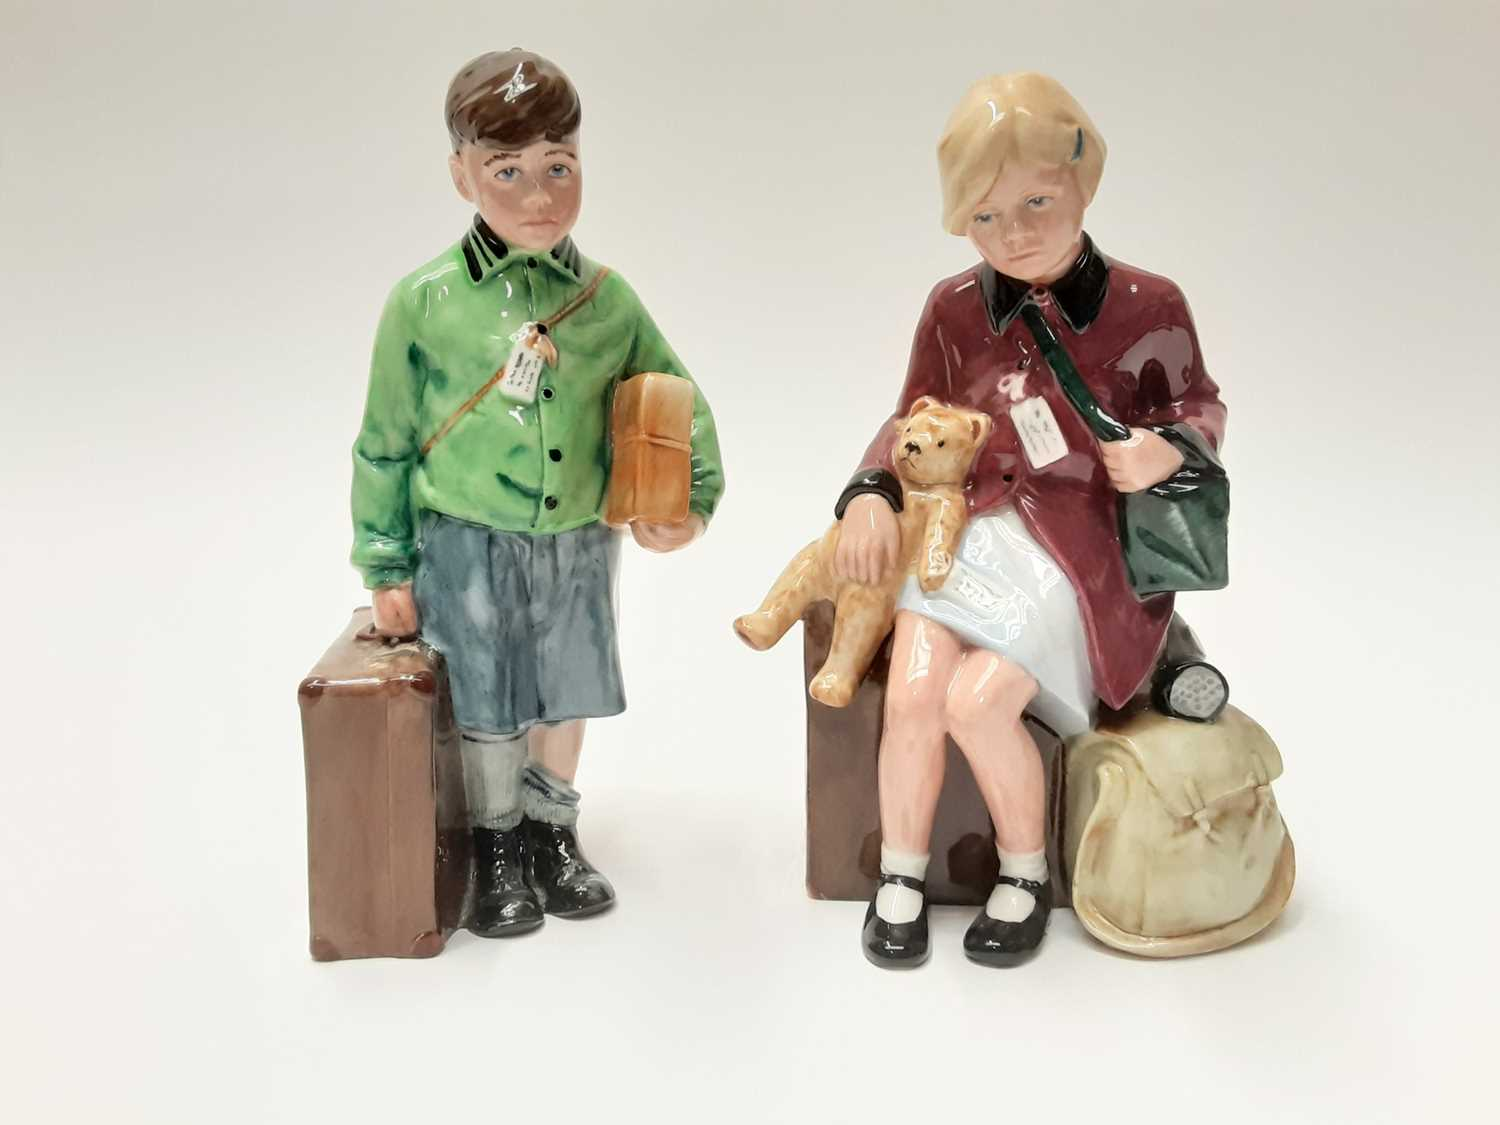 Lot 24 - Two Royal Doulton limited edition figures - The Boy Evacuee HN3202, number 3098 of 9500 and The Girl Evacuee HN3203, number 3590 of 9500